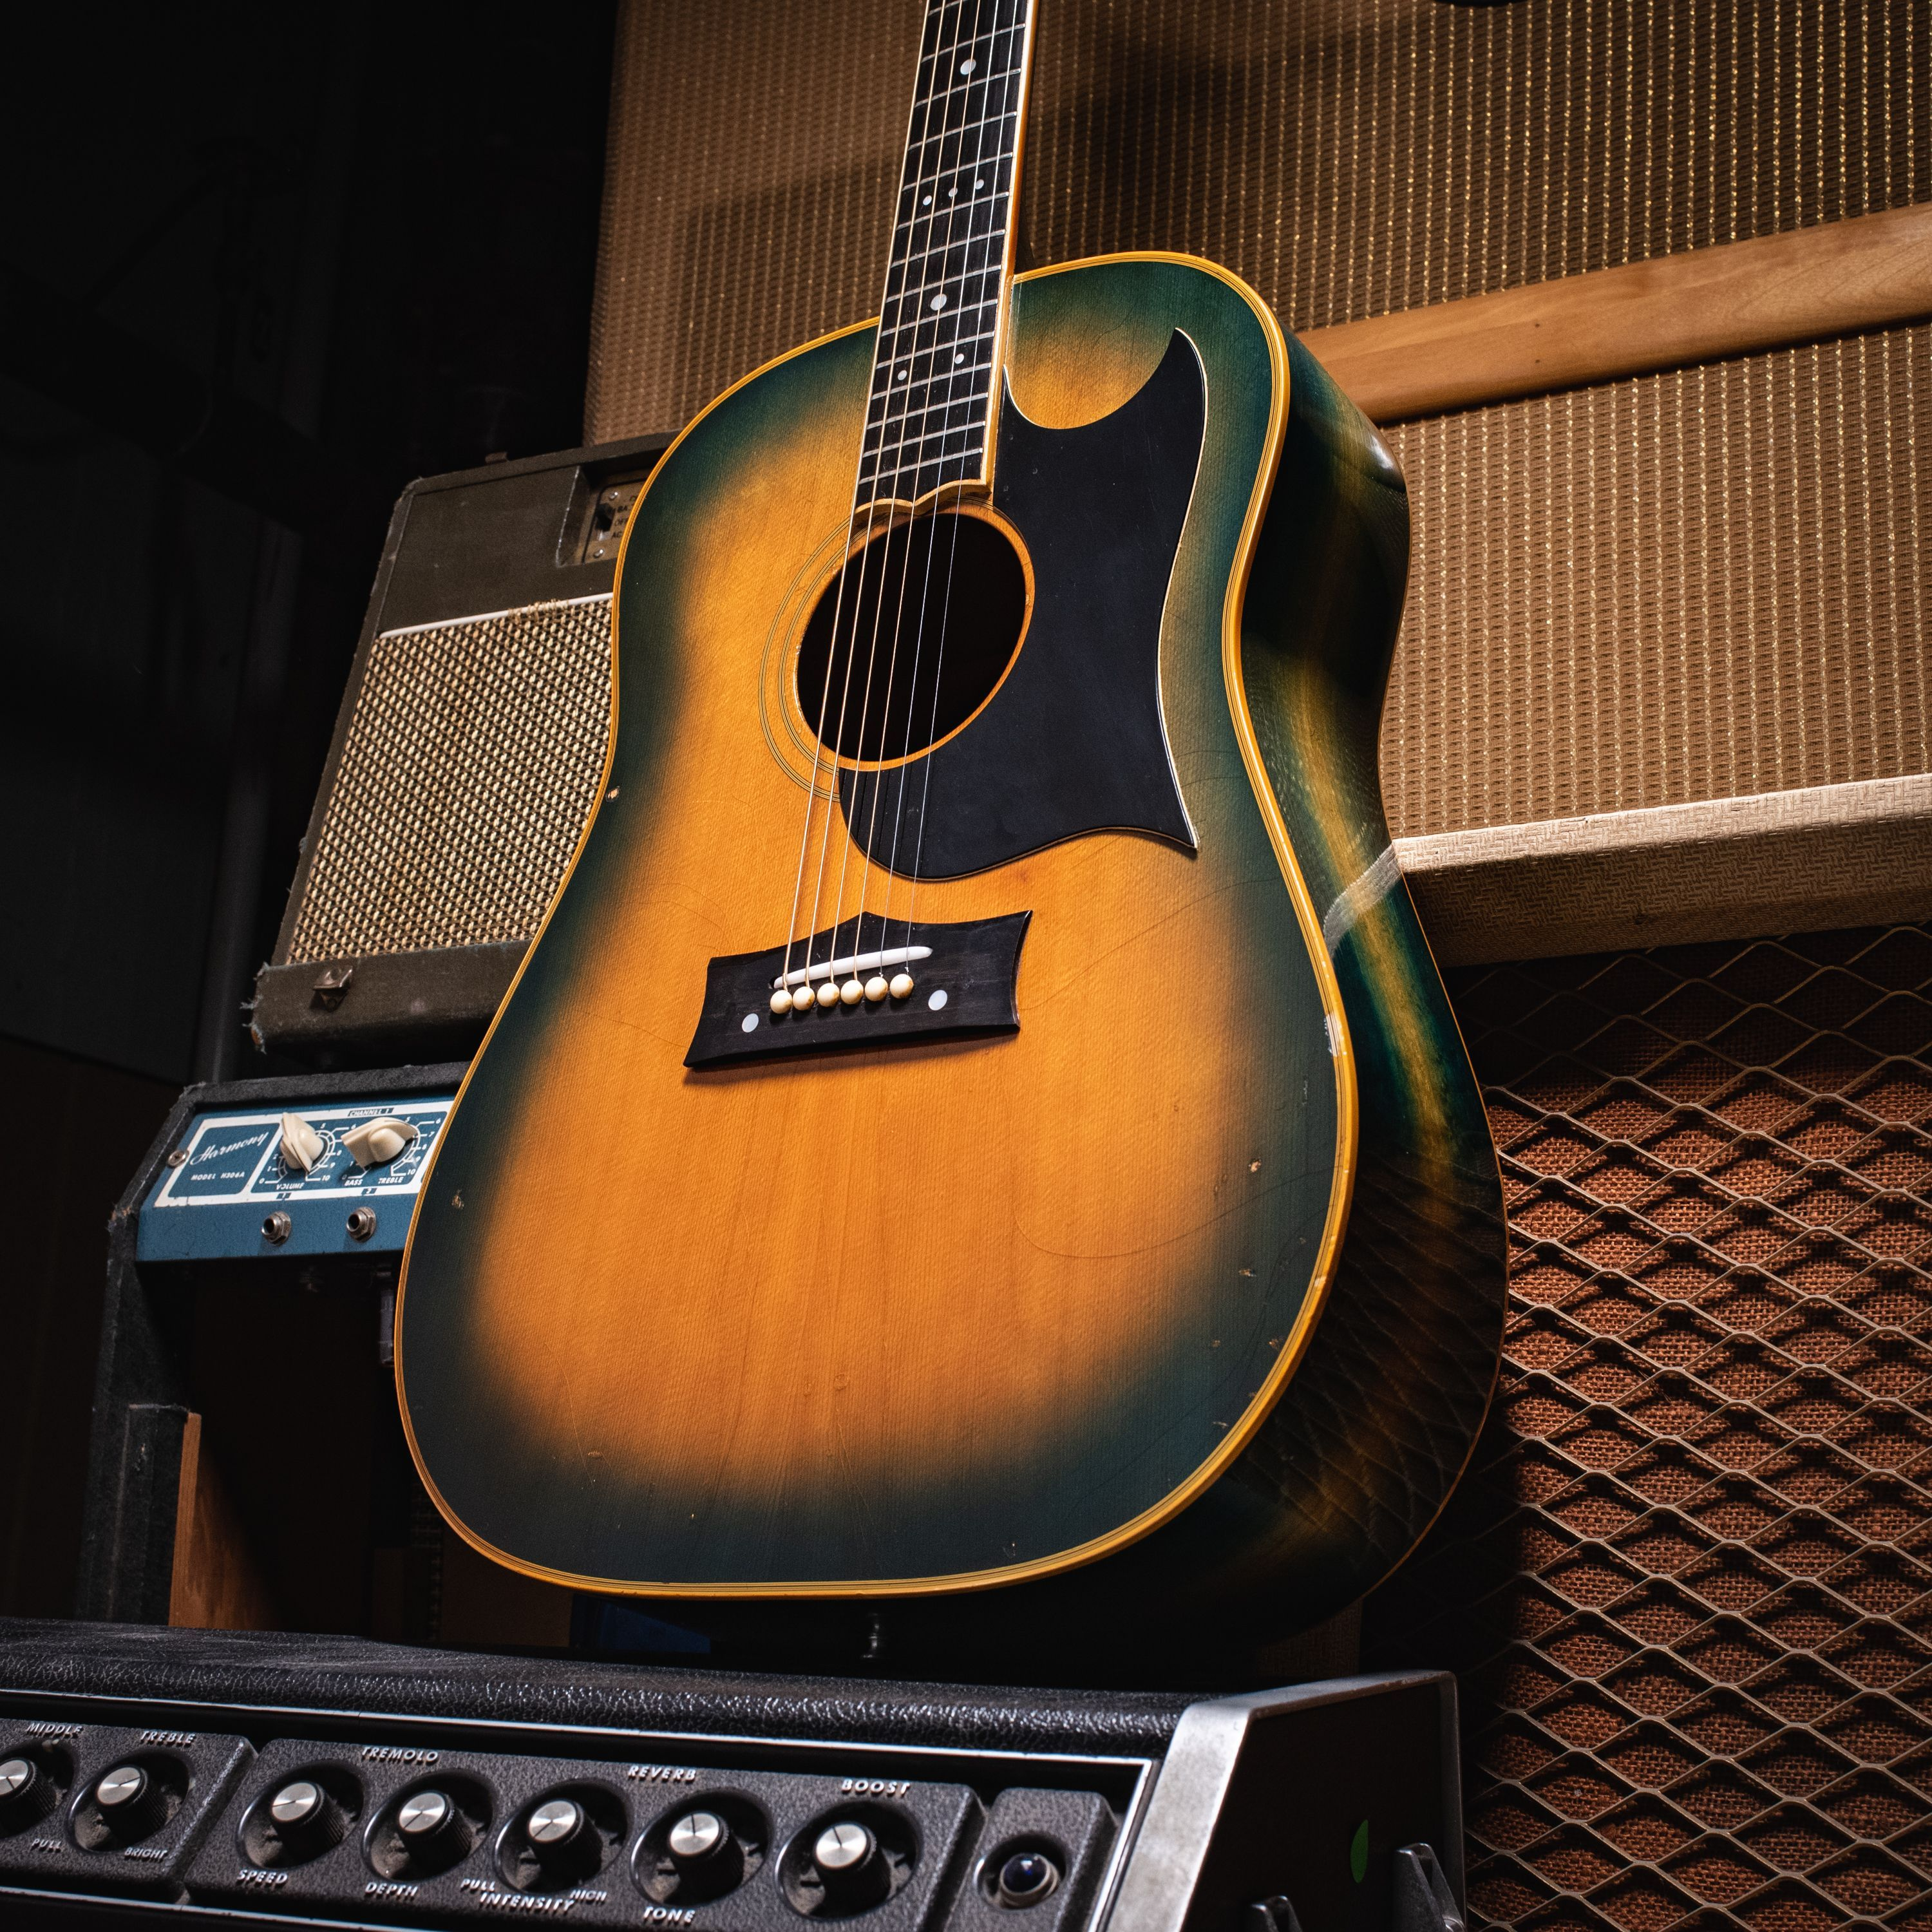 If You Re Getting Some Gear Envy From This 60 S Grammer G 20c In Green Burst Stop By The Shop Or Check It Out Online Today Guitar Grammer Guitar Photography